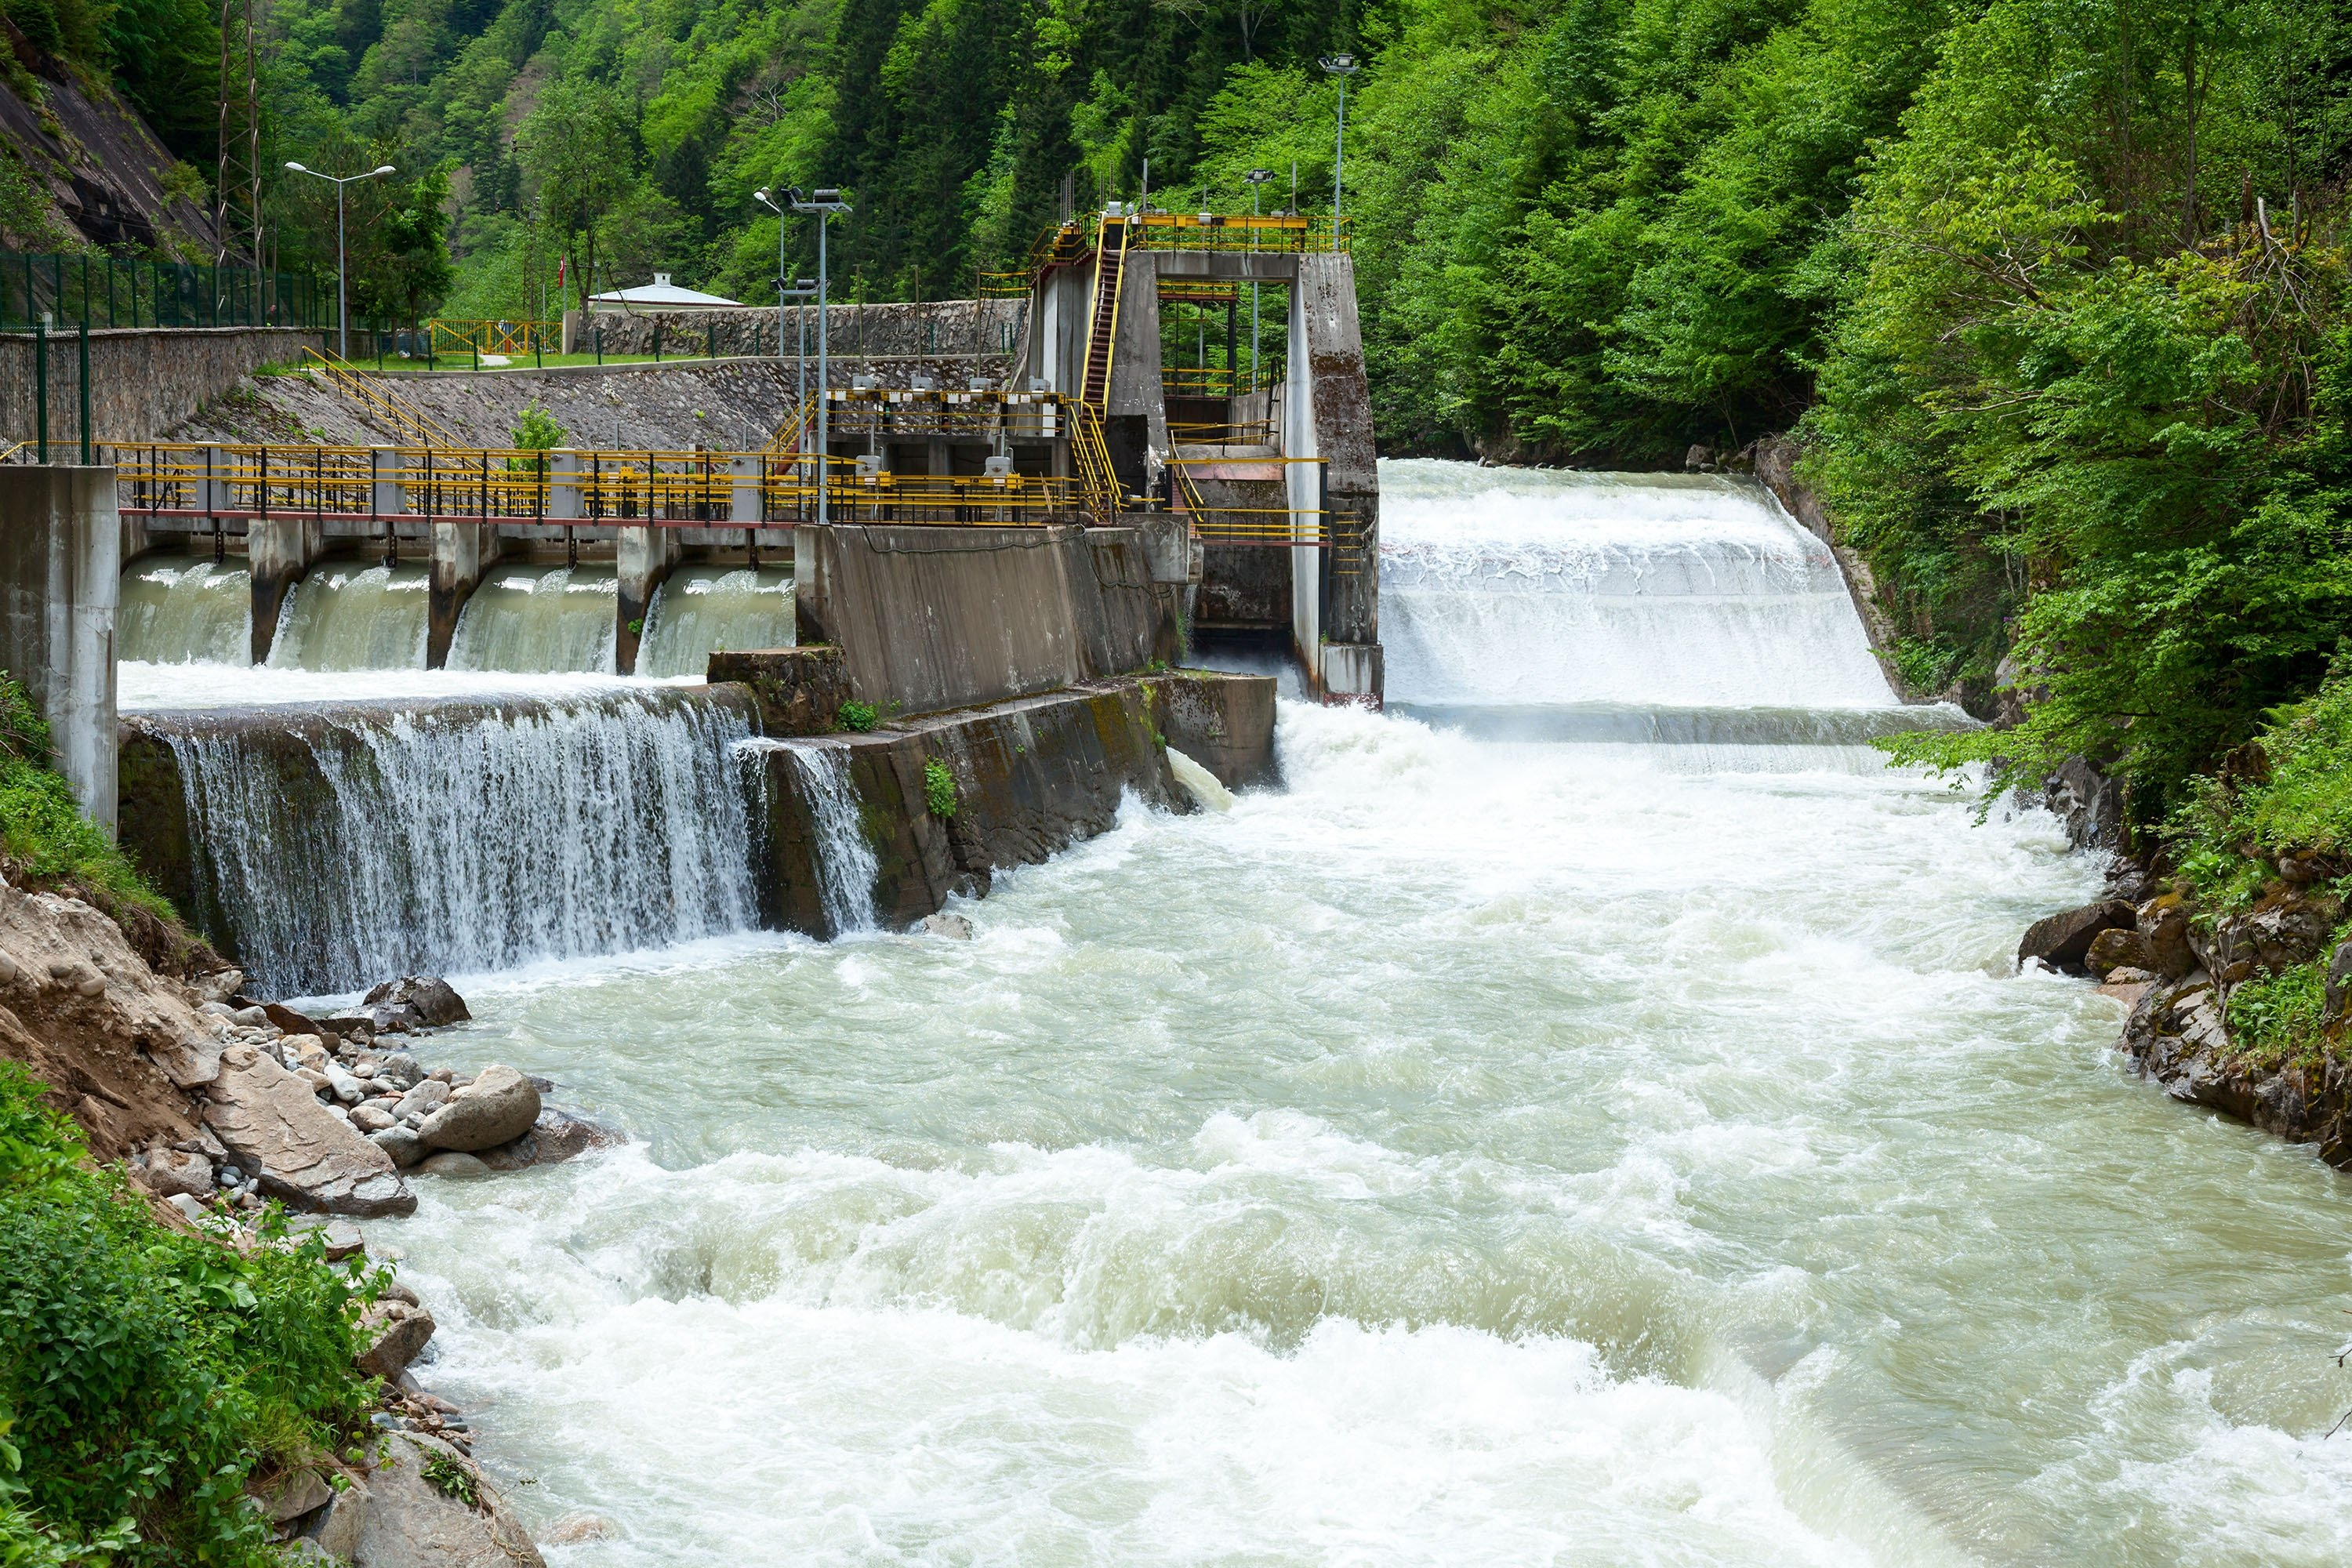 A small hydroelectrical power plant in Turkey. (Shutterstock Photo)